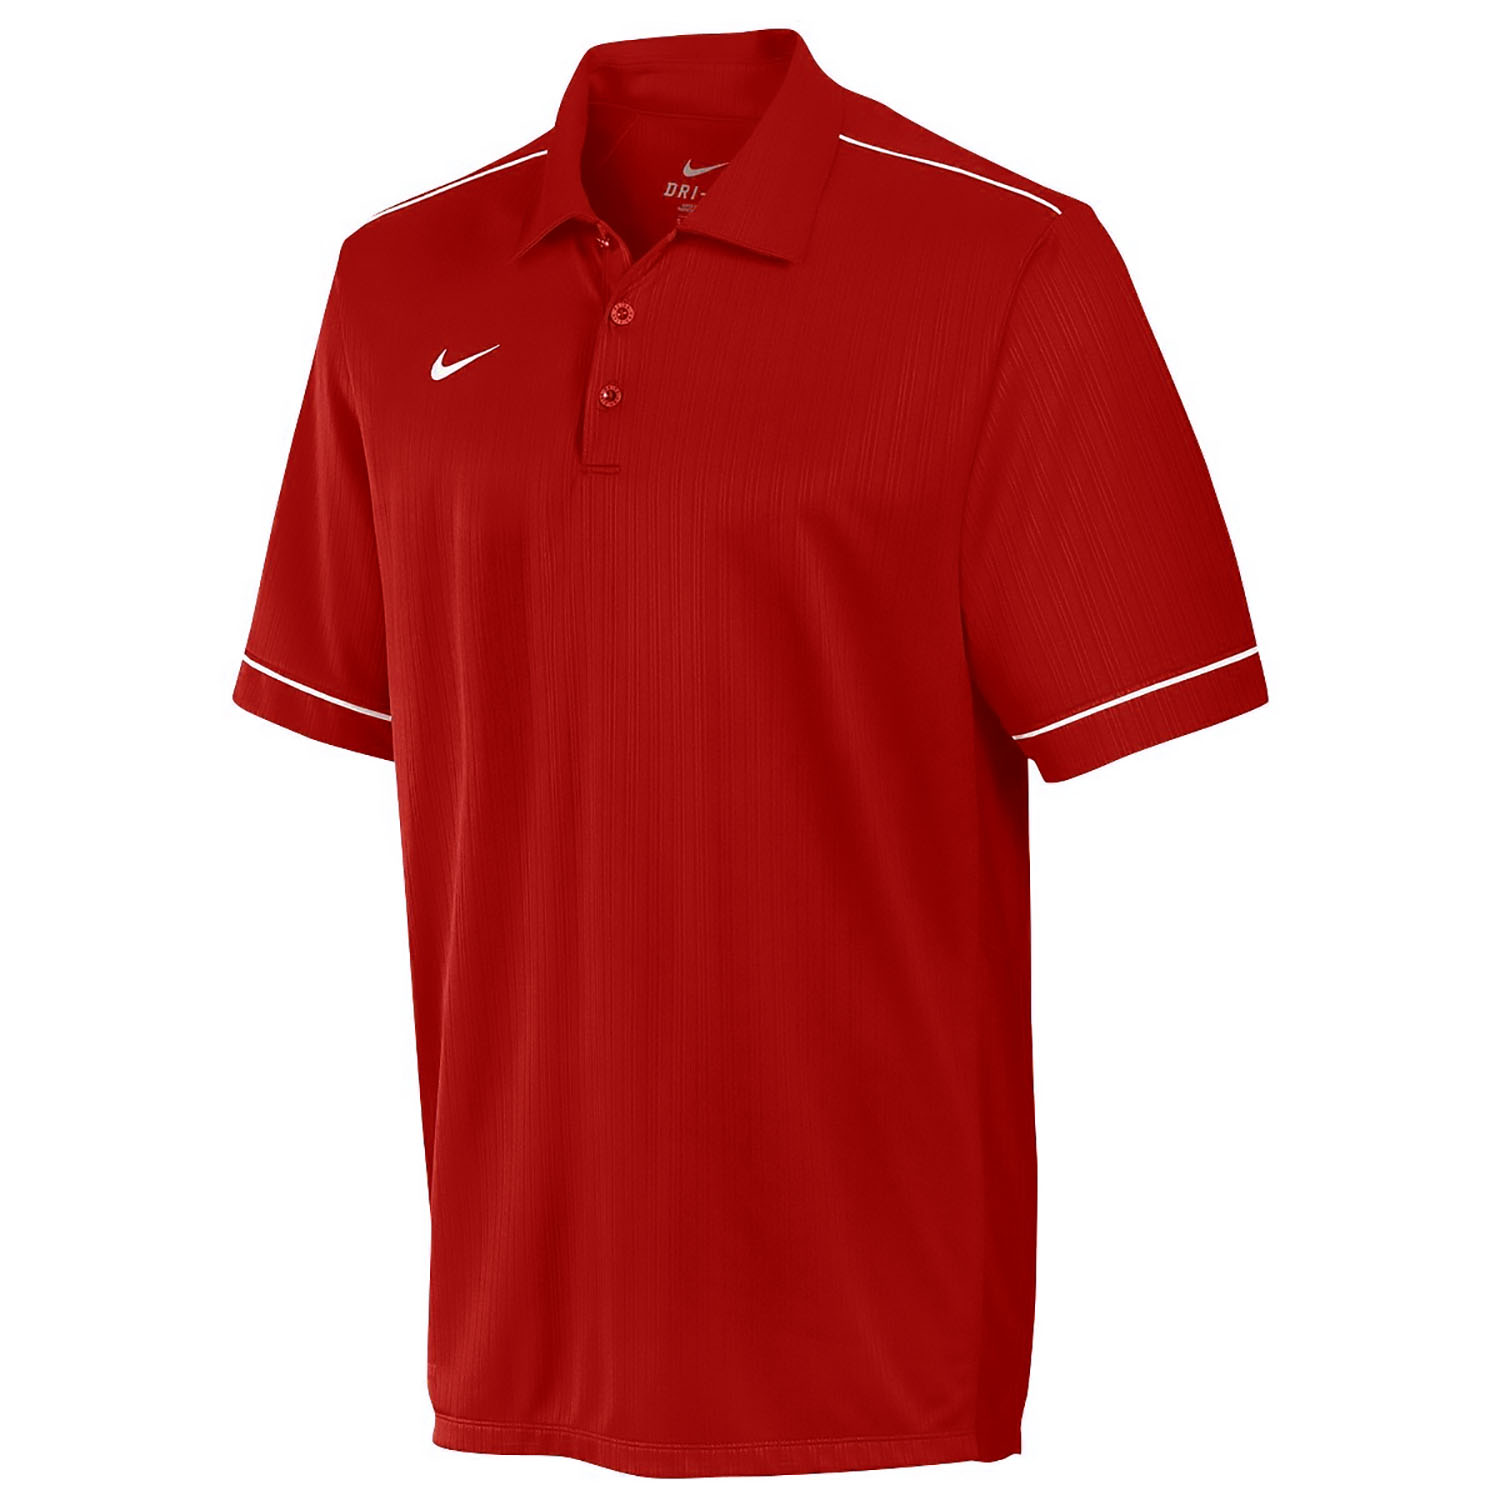 Nike Men's Play Action Pass Dri-Fit Golf Polo Shirt | eBay